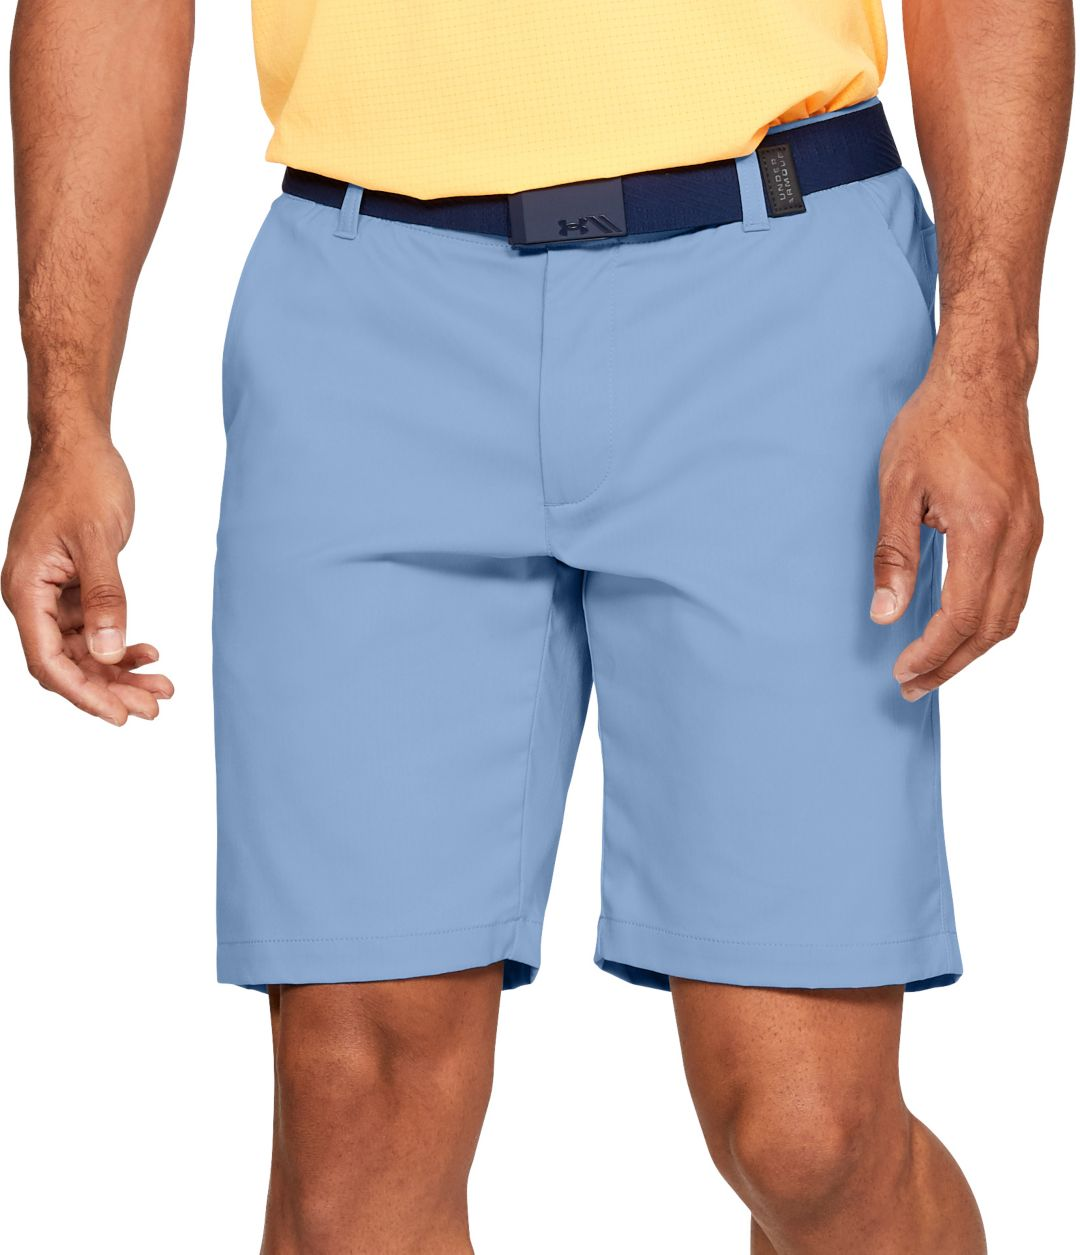 f4d4d04abae Under Armour Men's Showdown Golf Shorts | DICK'S Sporting Goods